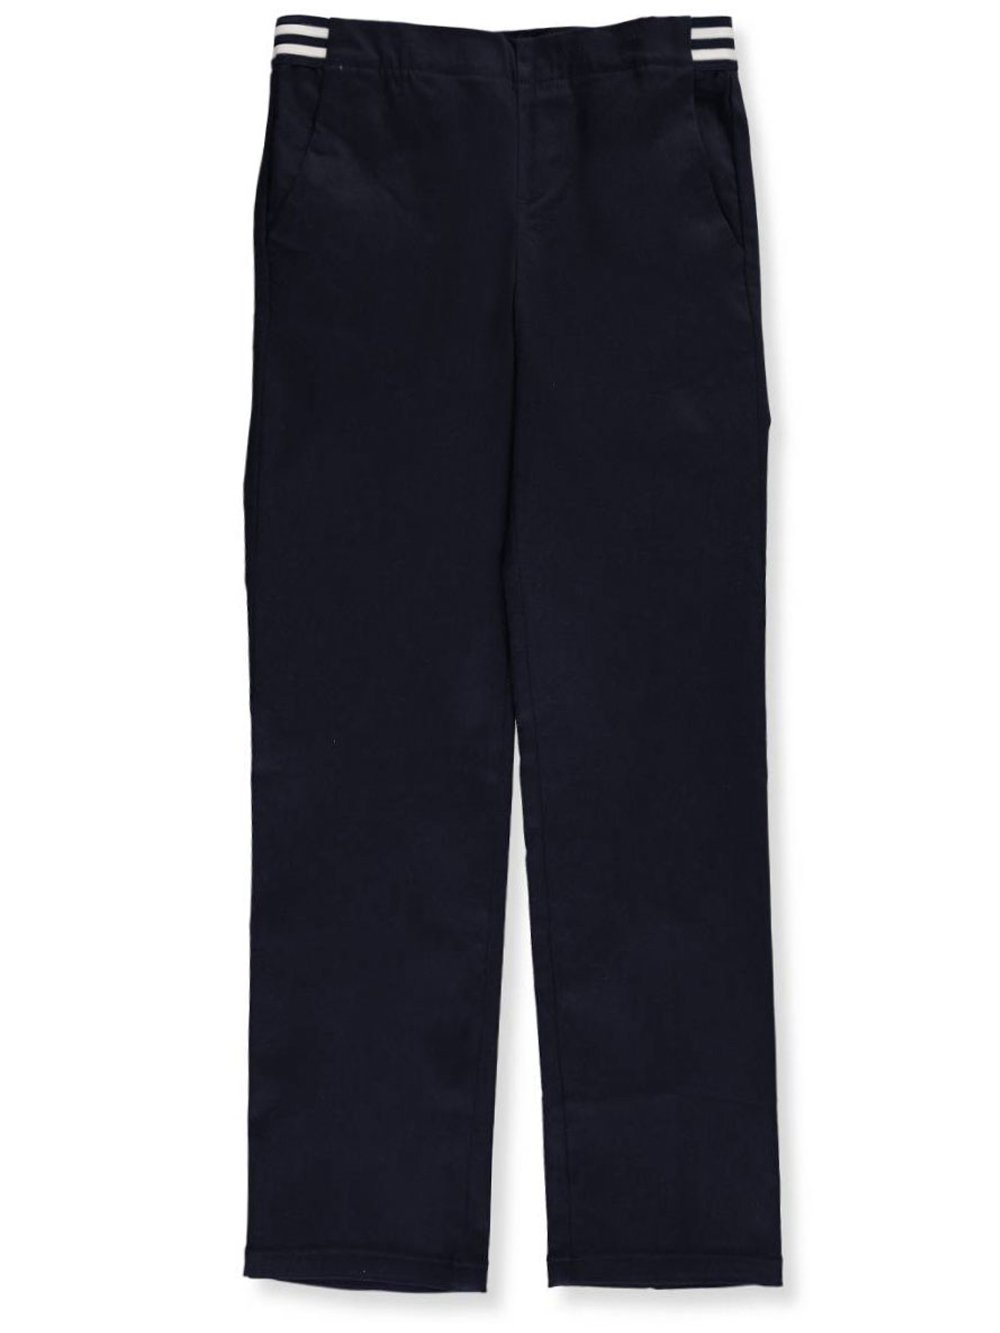 French Toast Girls Plus Size' Stretch Contrast Elastic Waist Pull-on Pant, Navy, 16.5